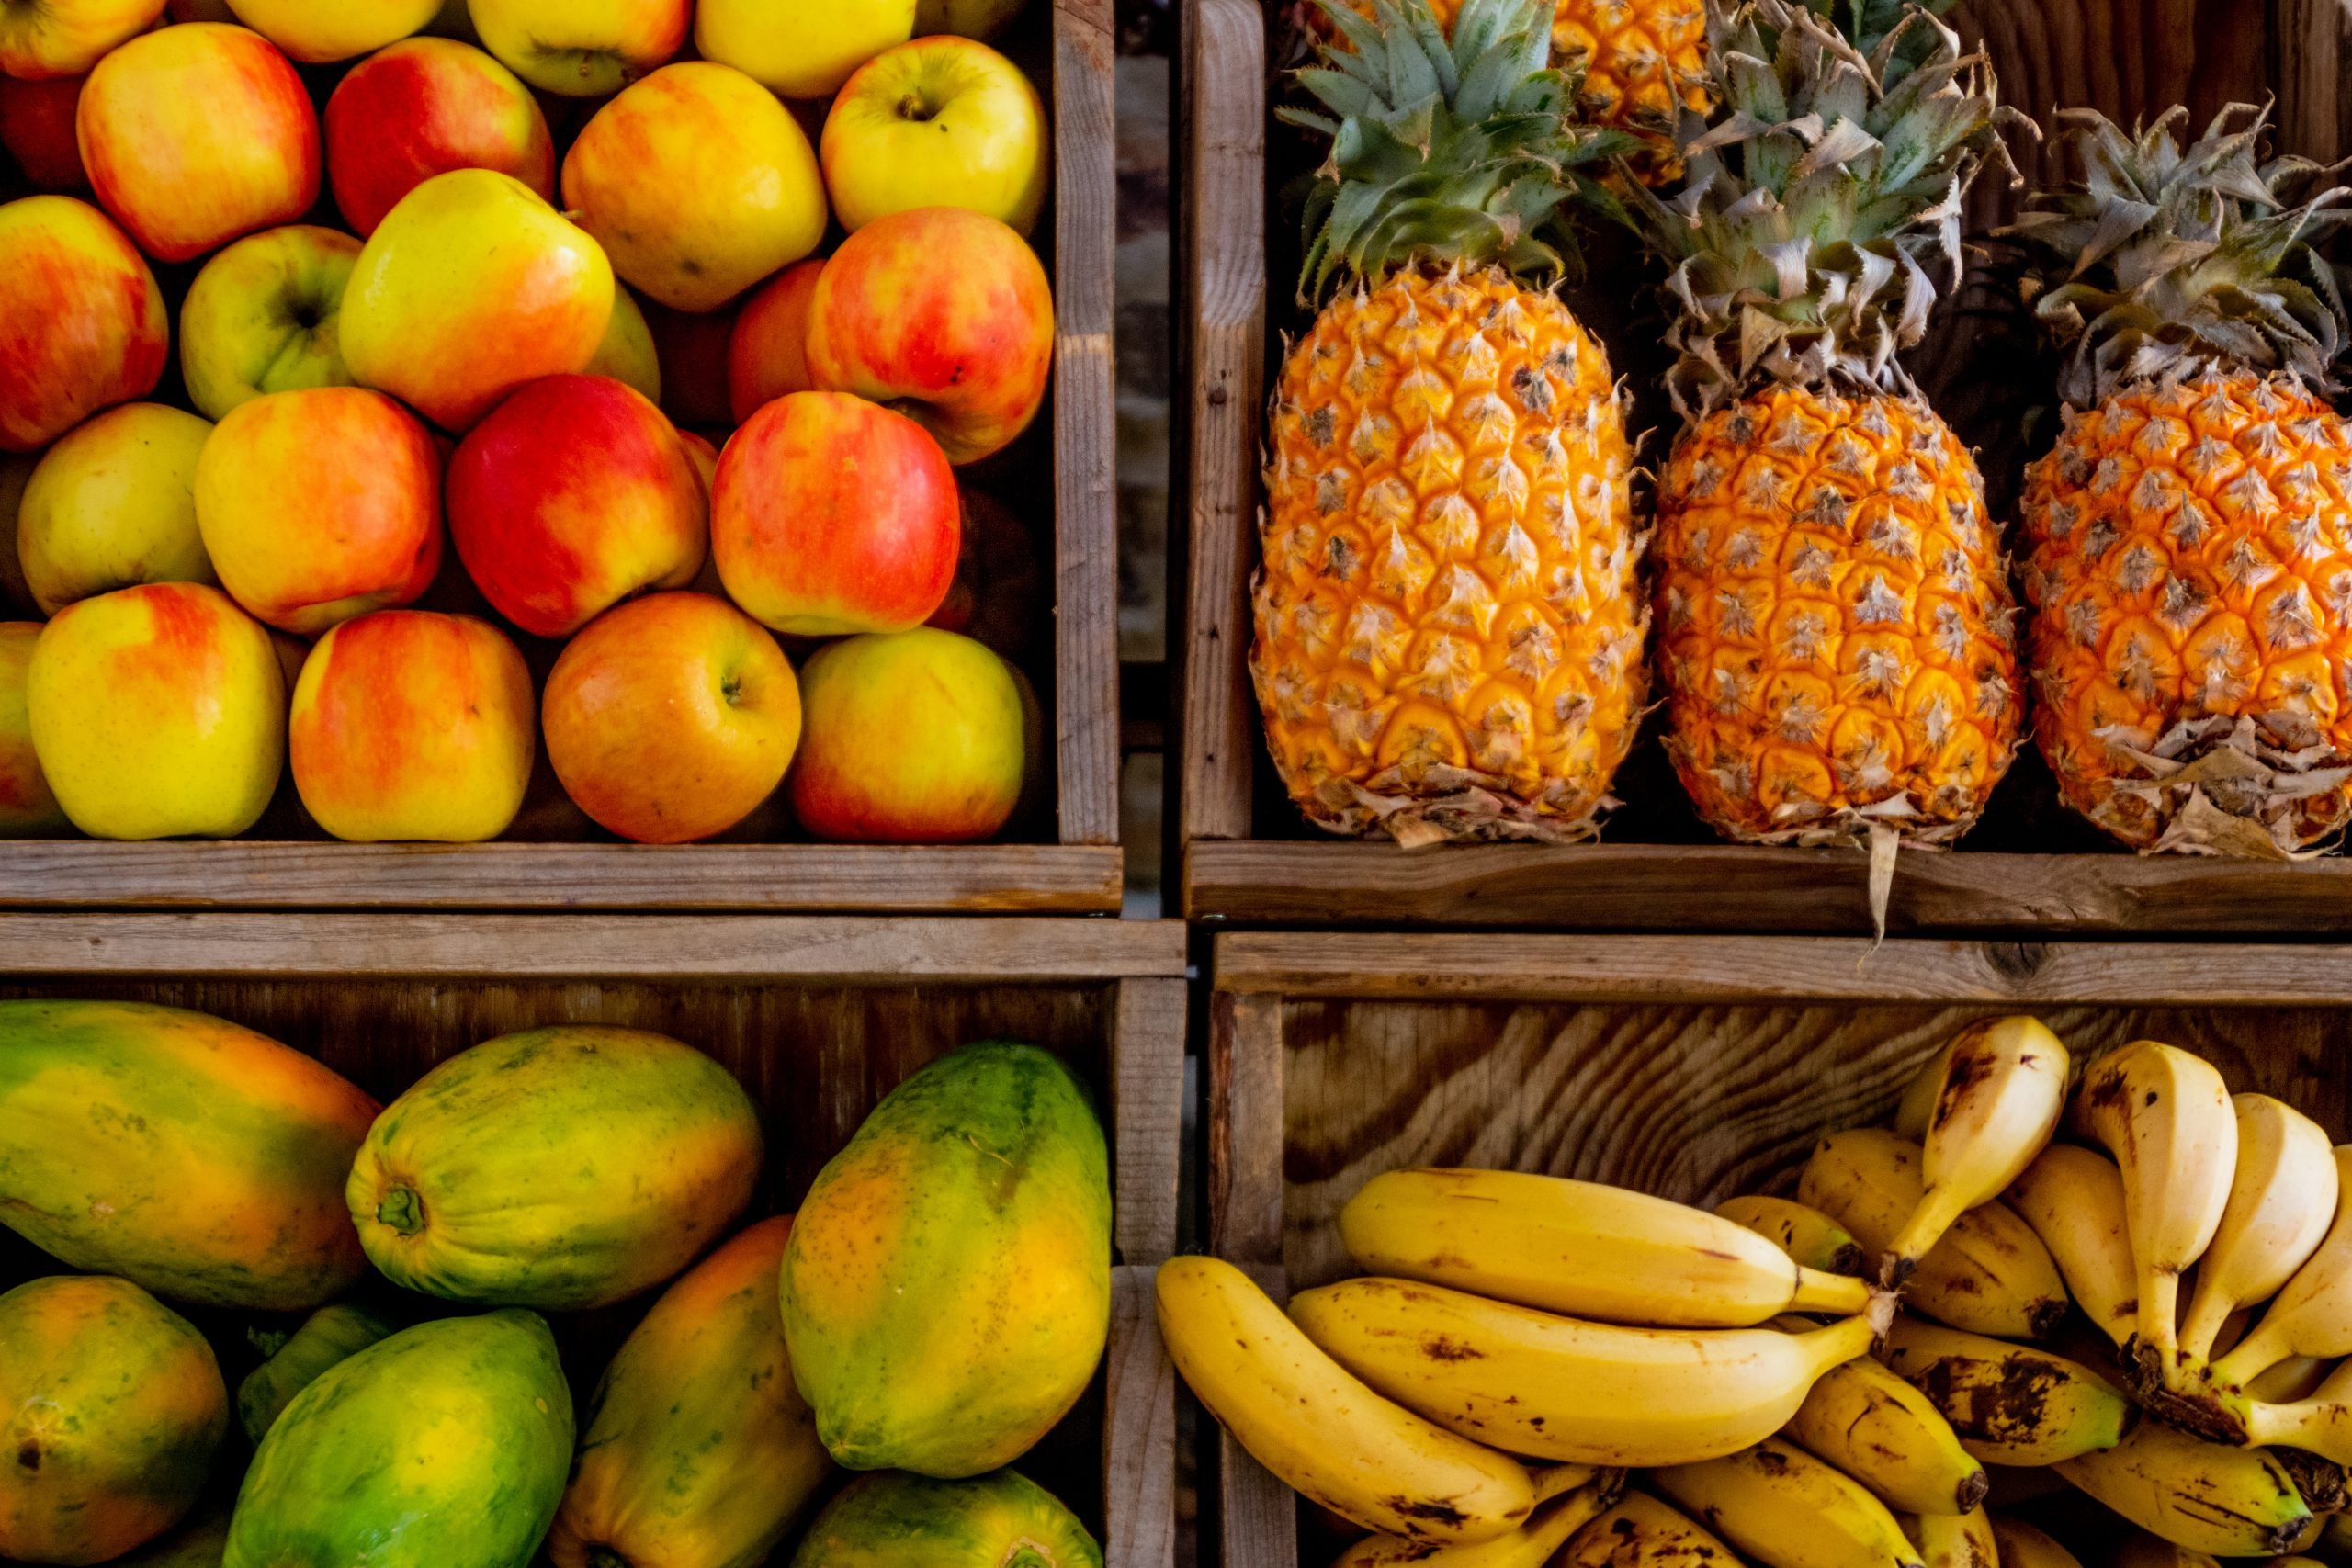 Fruits in crates; supporting immune system health naturally.